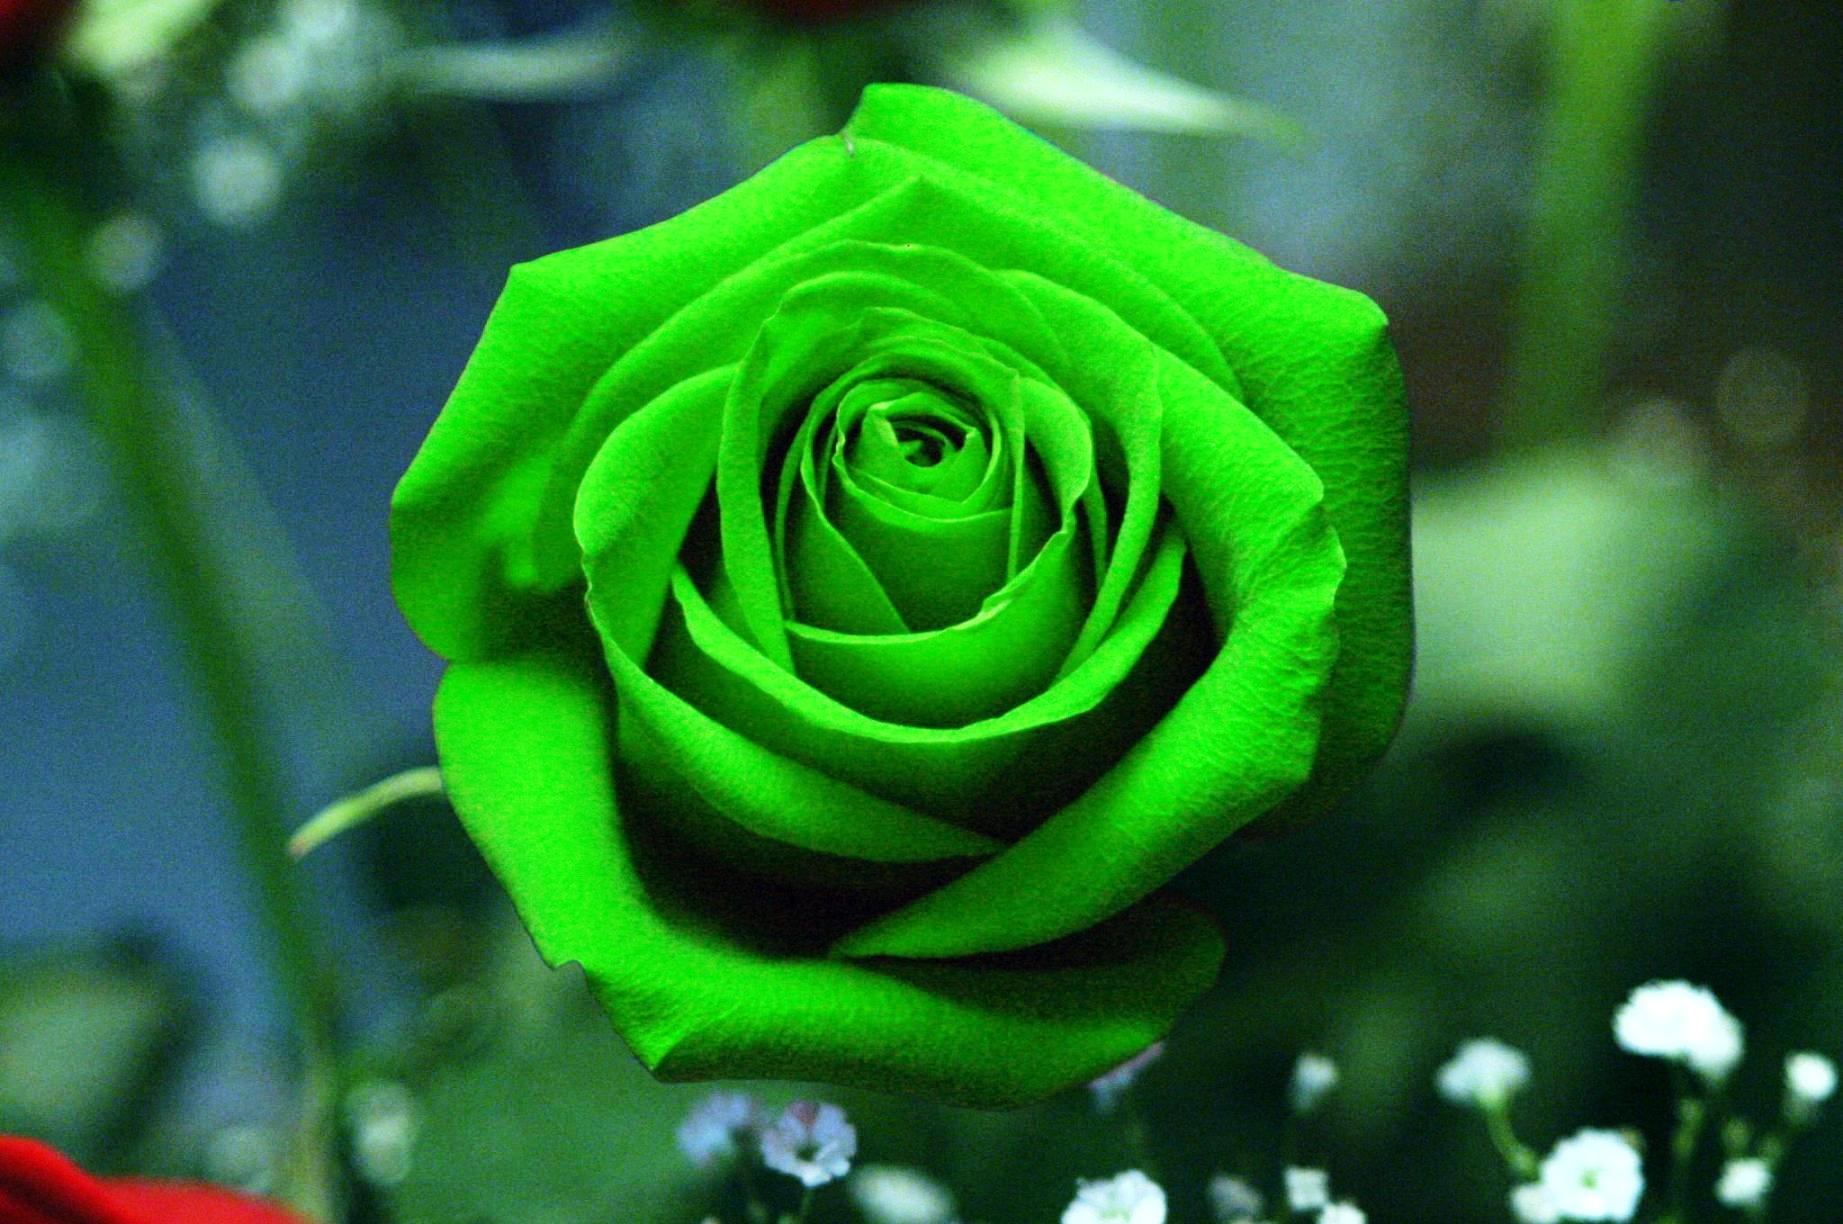 green-rose-flower-wallpaper-hd-background-05